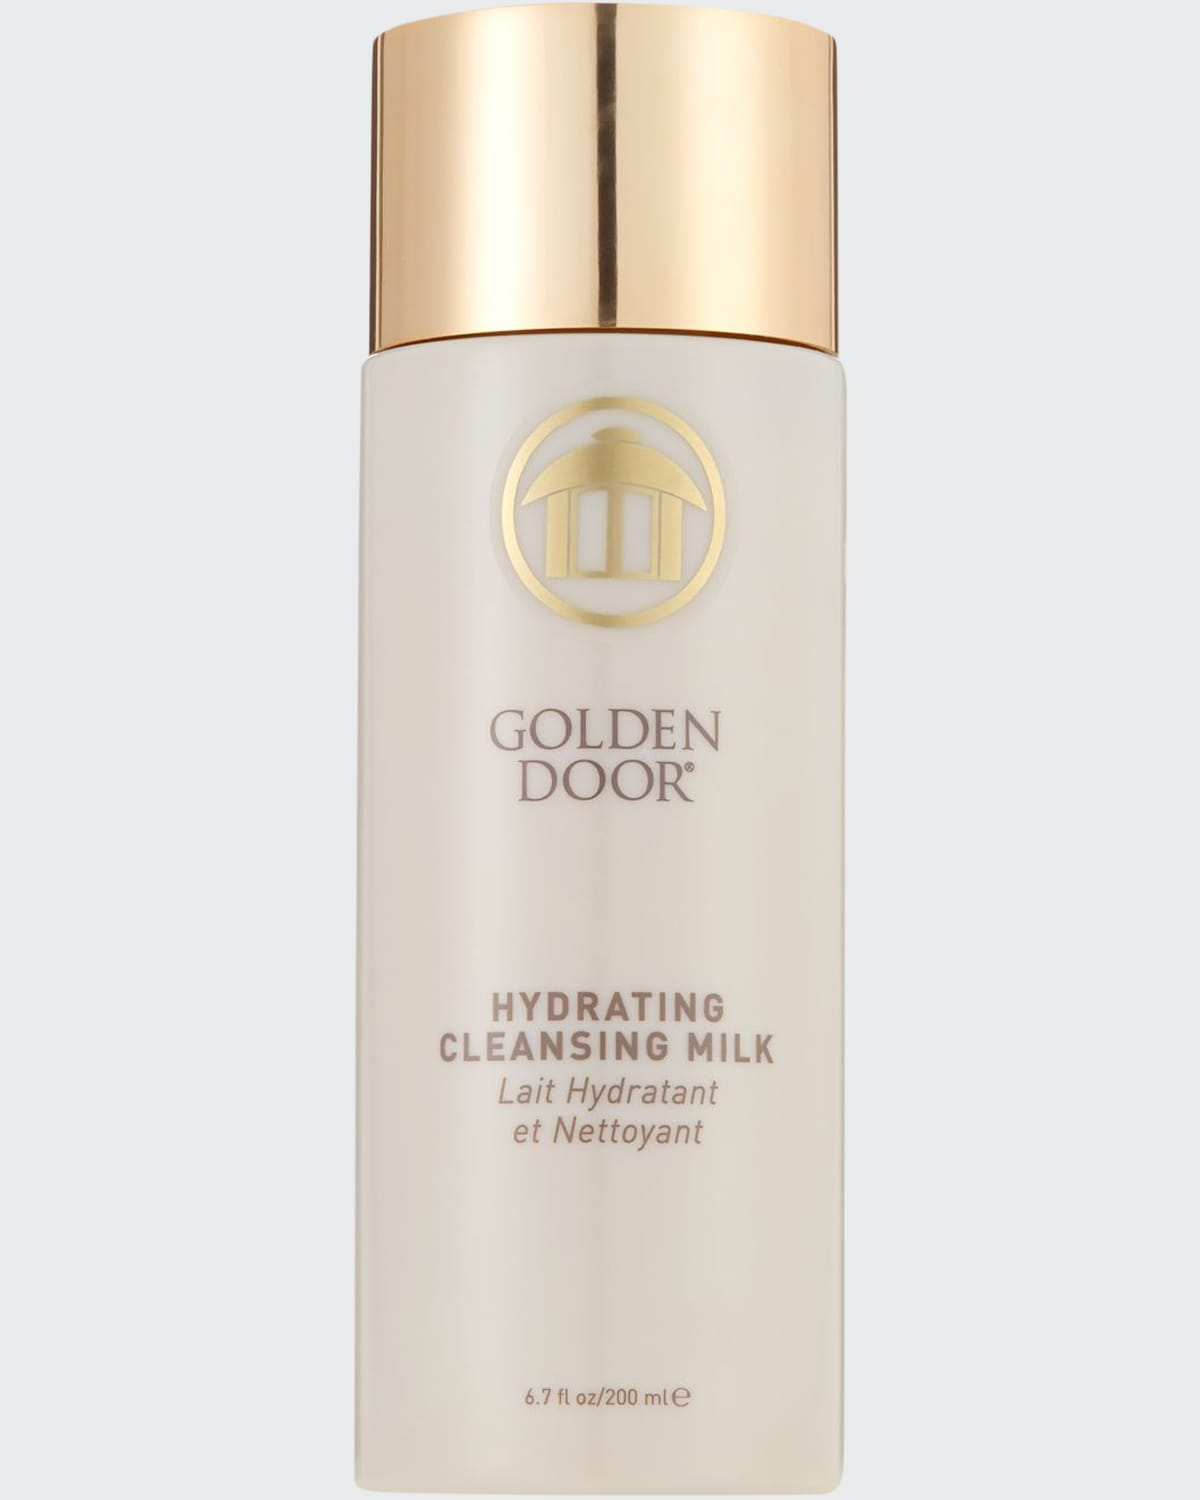 Hydrating Cleansing Milk